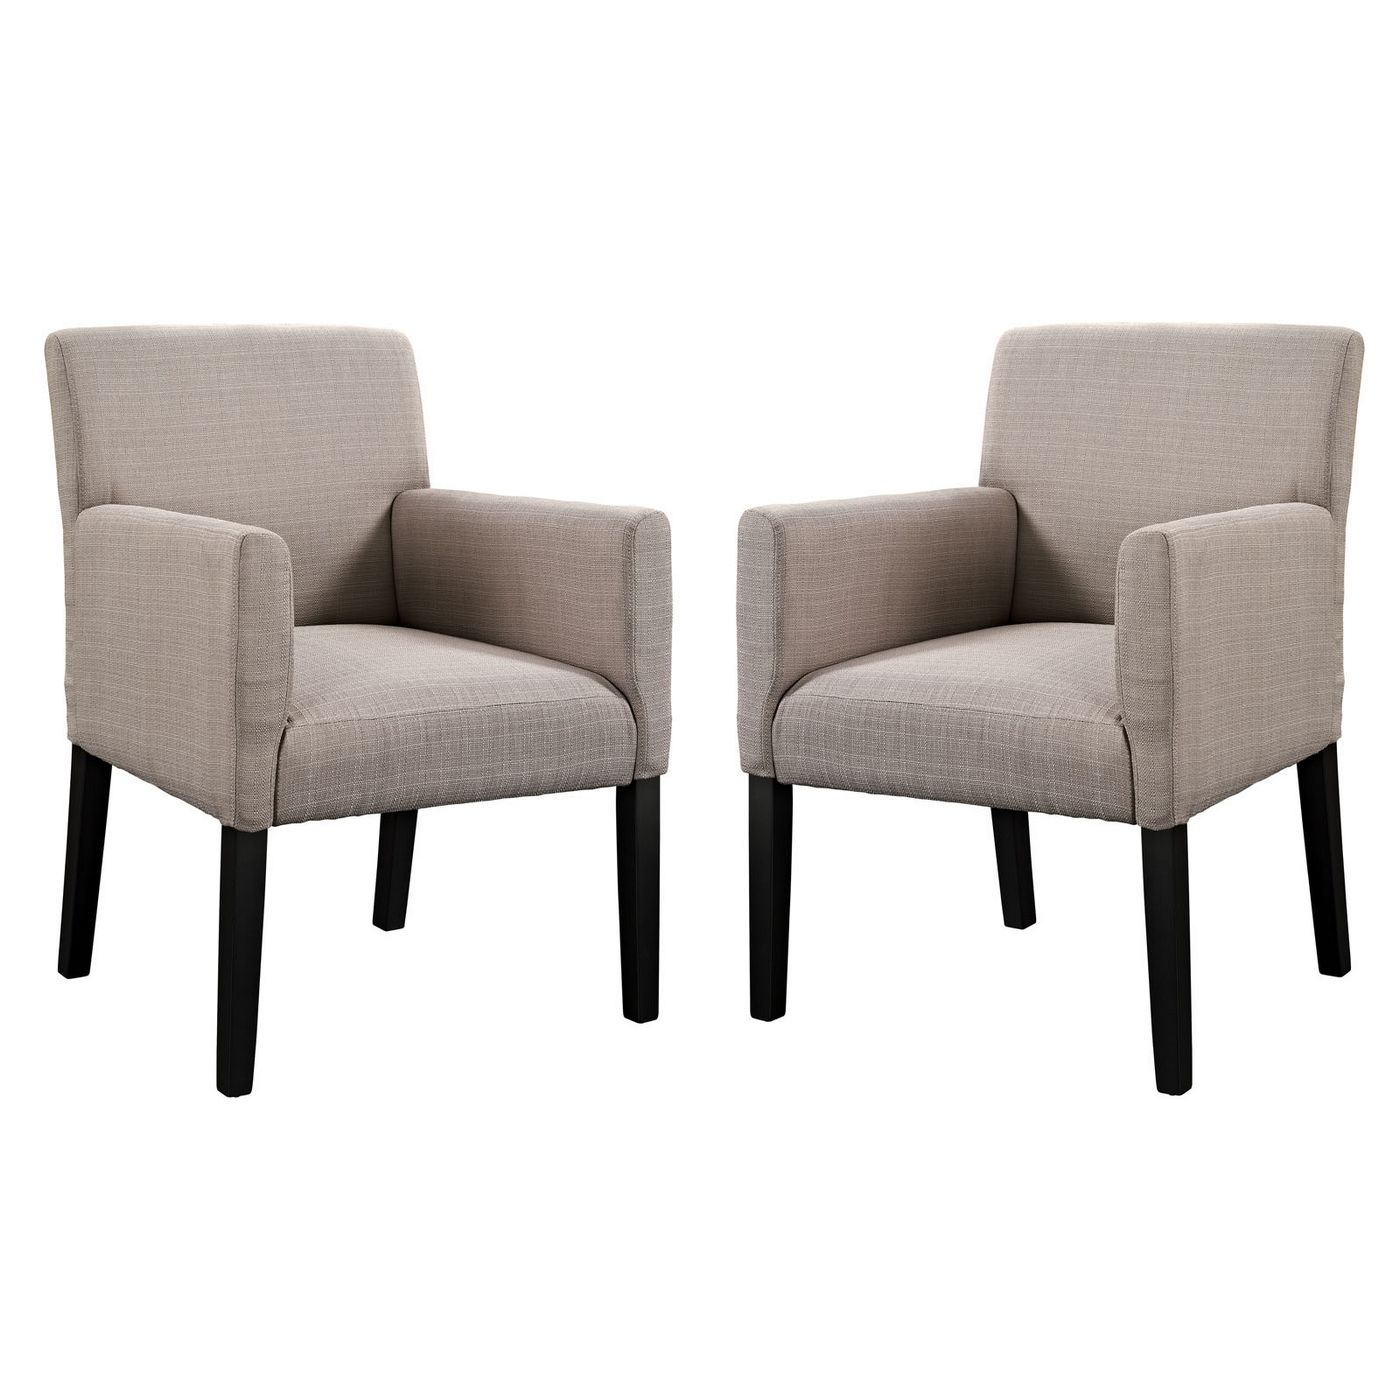 Chloe contemporary upholstered armchair with wood legs beige for Modern armchair